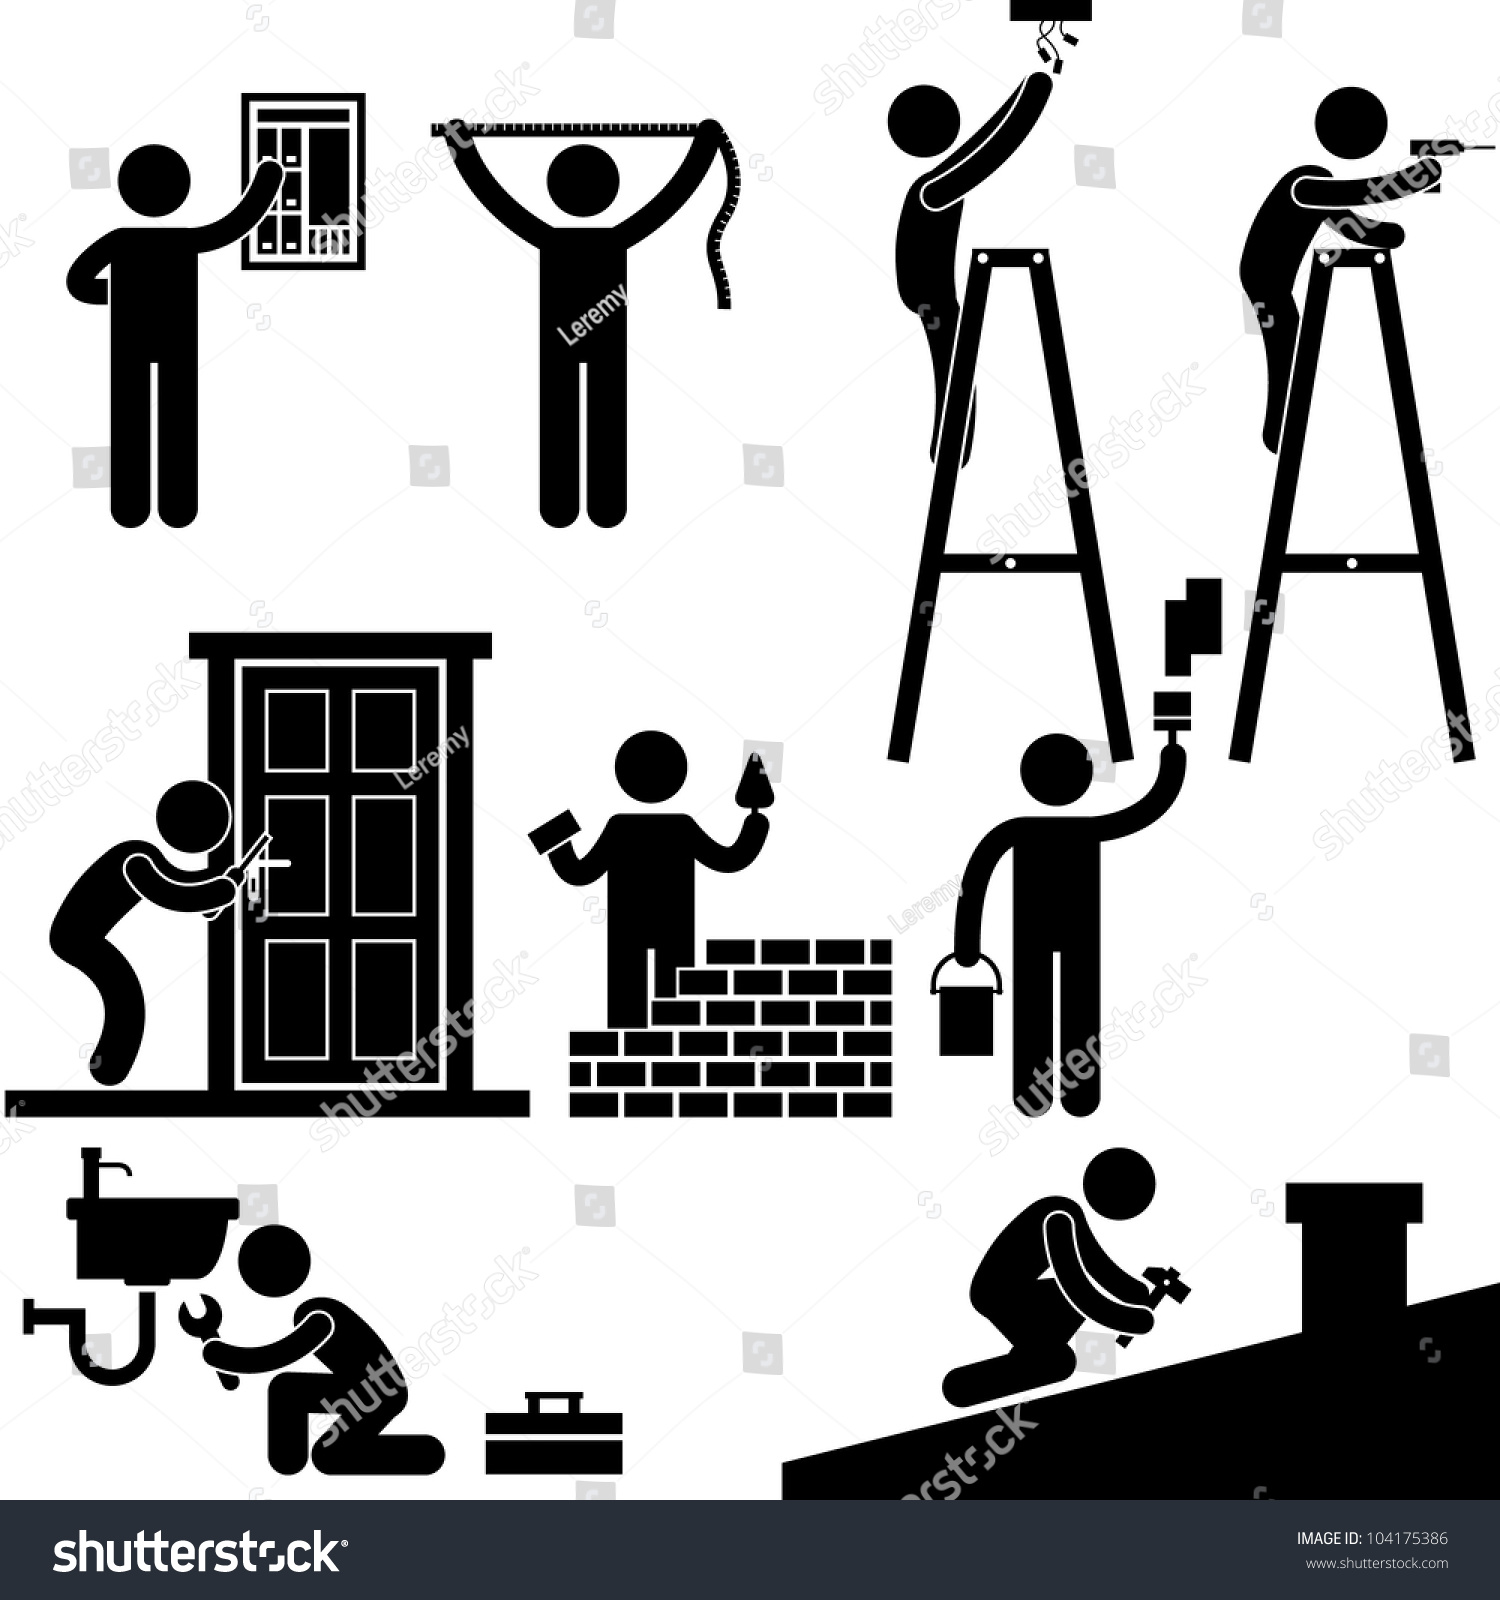 Stick Figure Clip Art Handyman